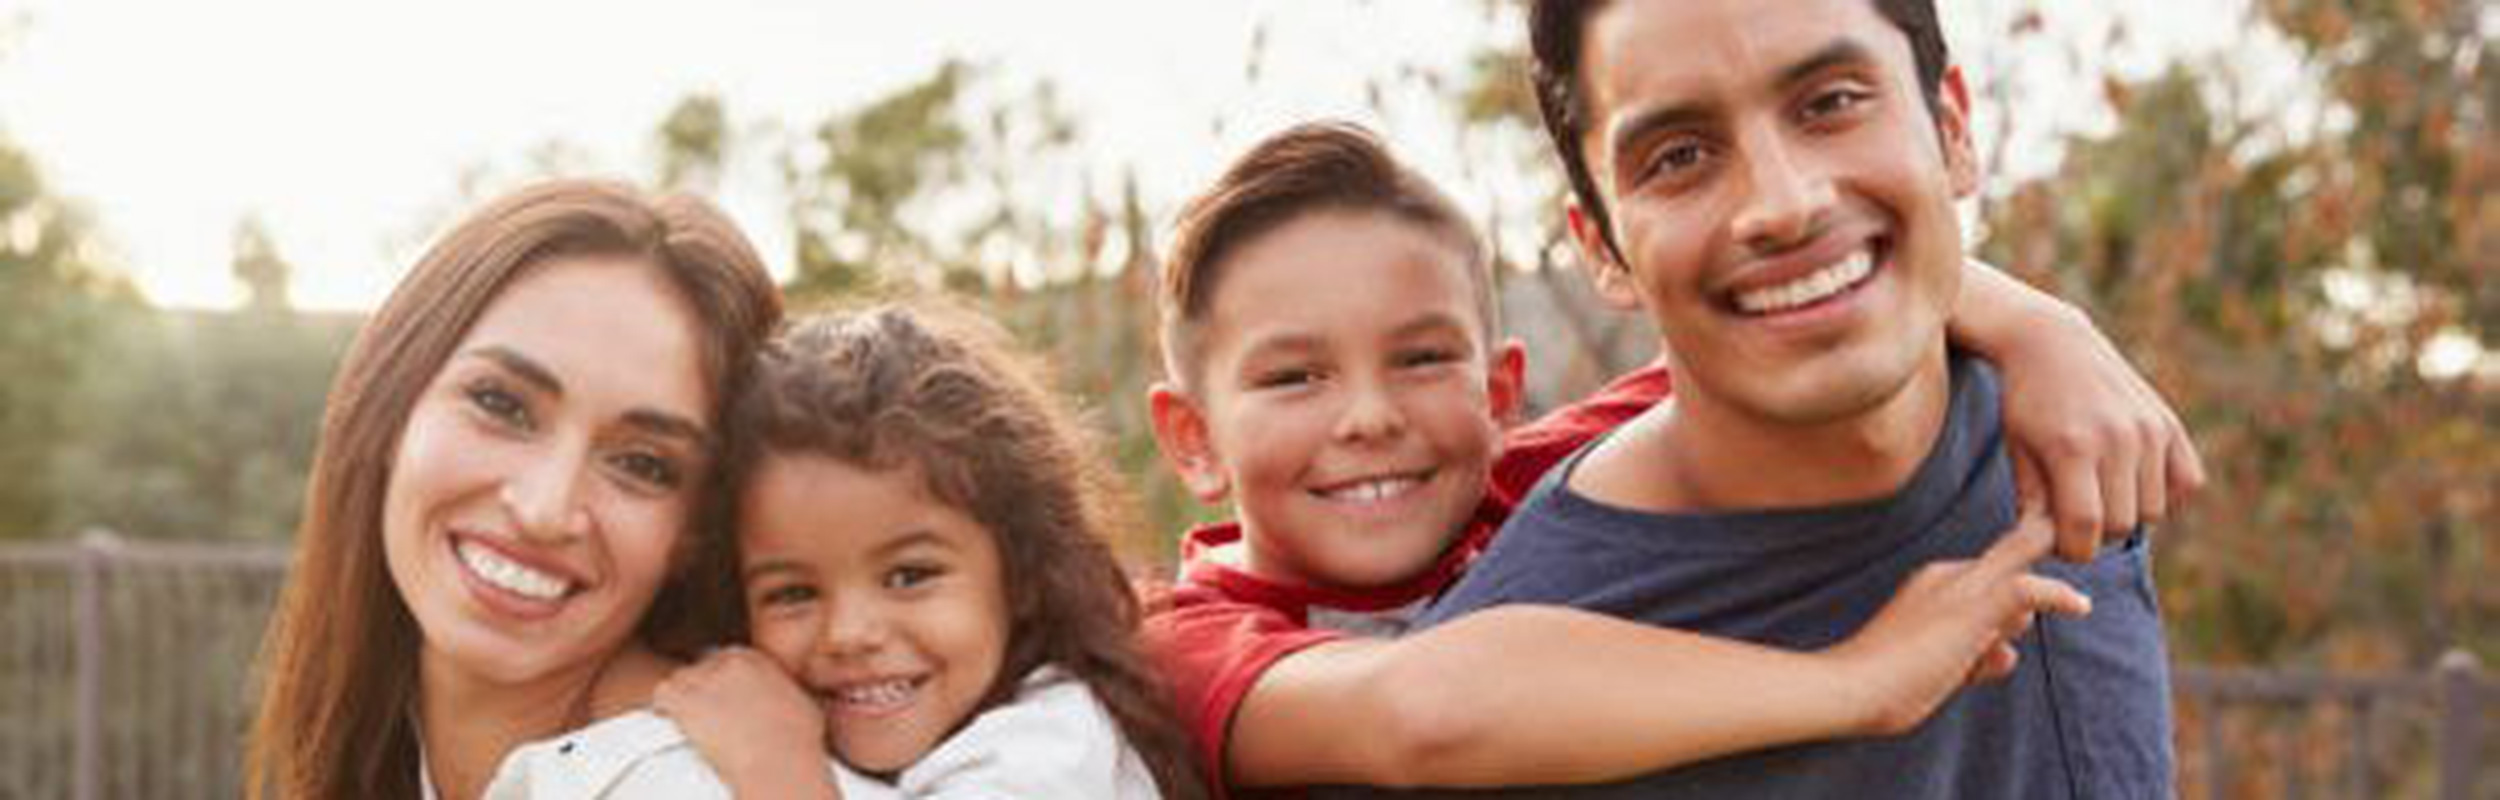 Three Ways the Whole Family Approach Builds Resilience